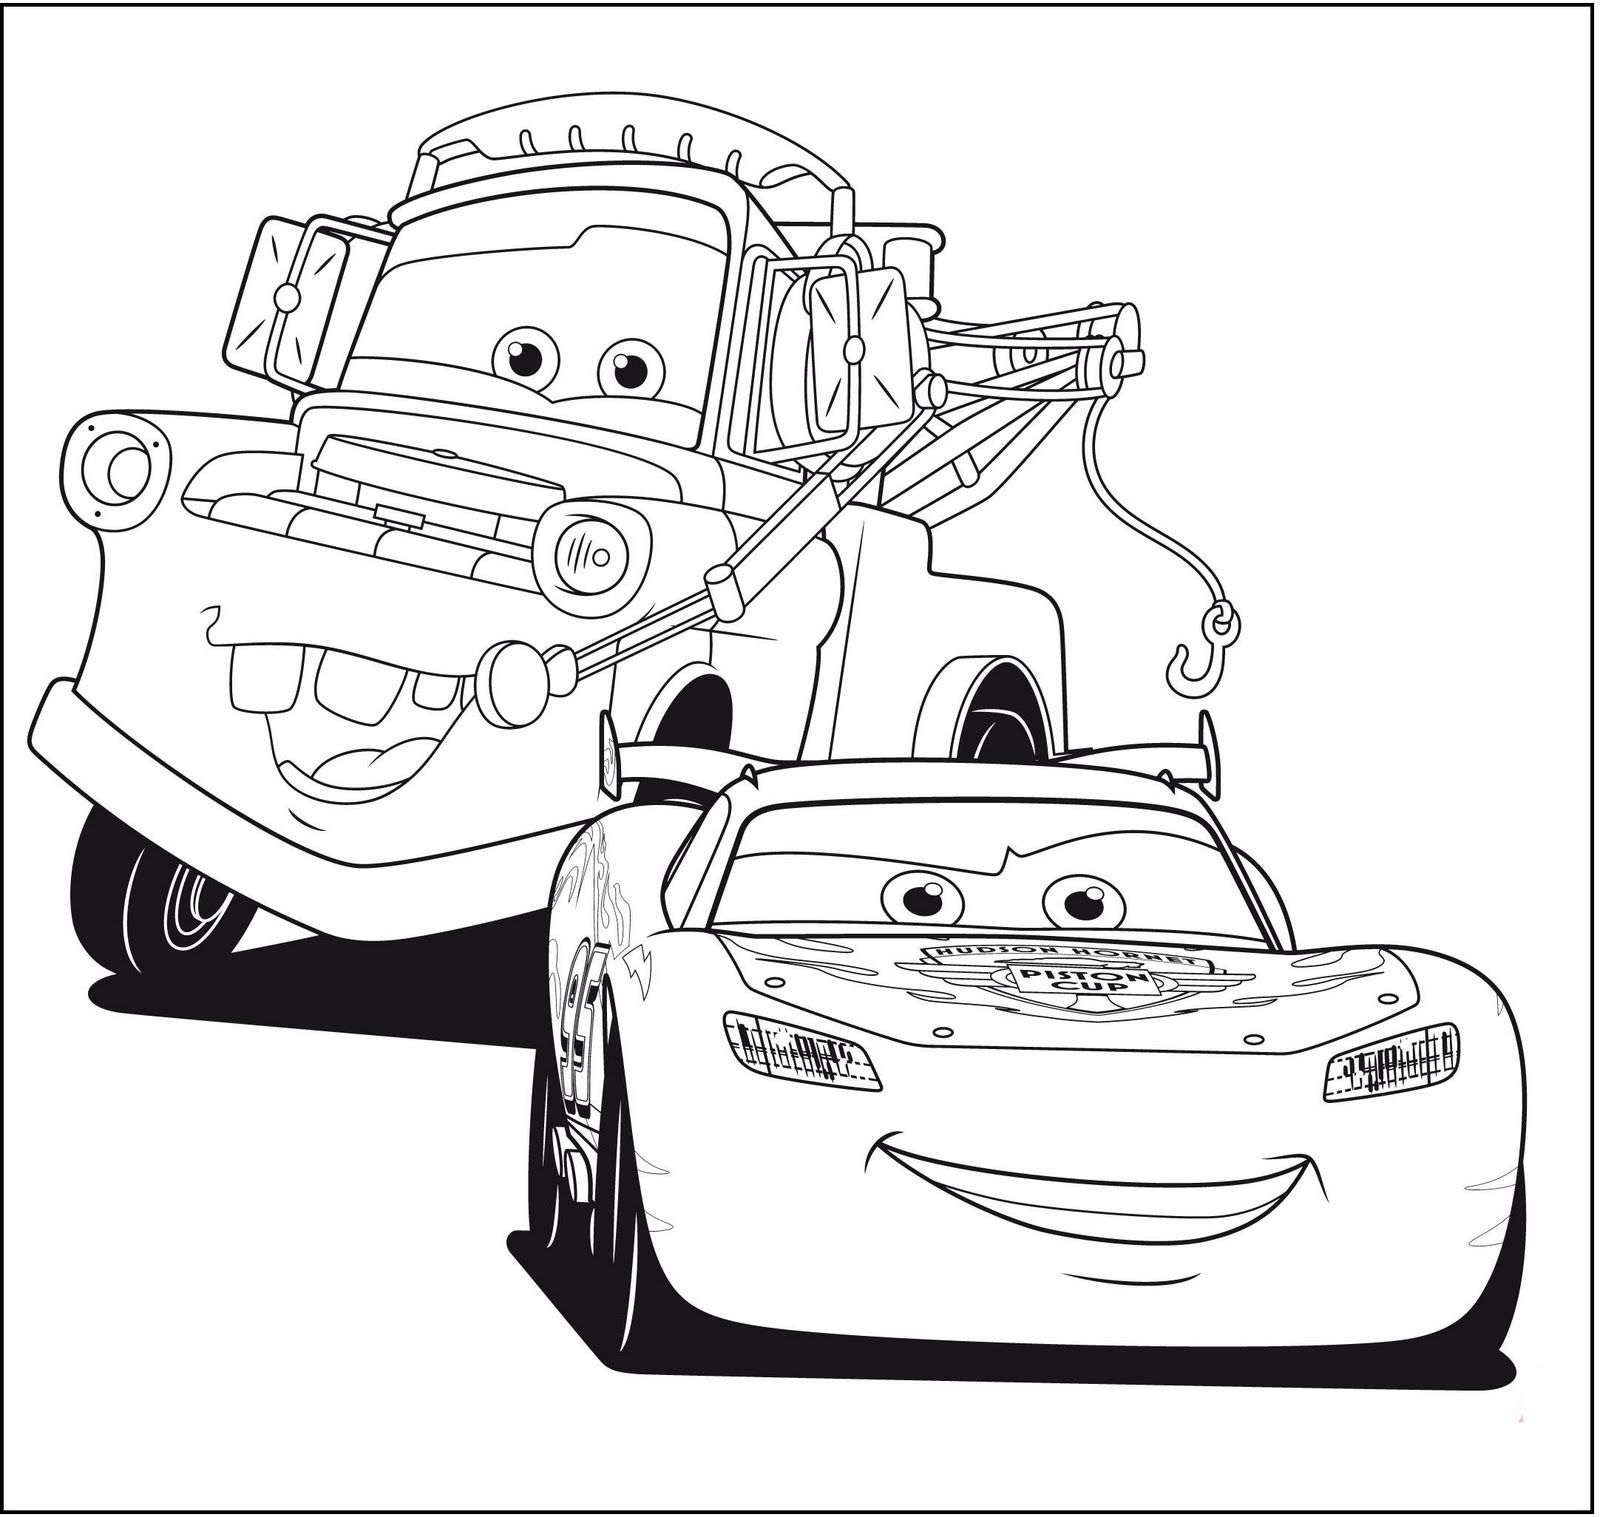 Disney Cars Coloring Pages   Free Large Images